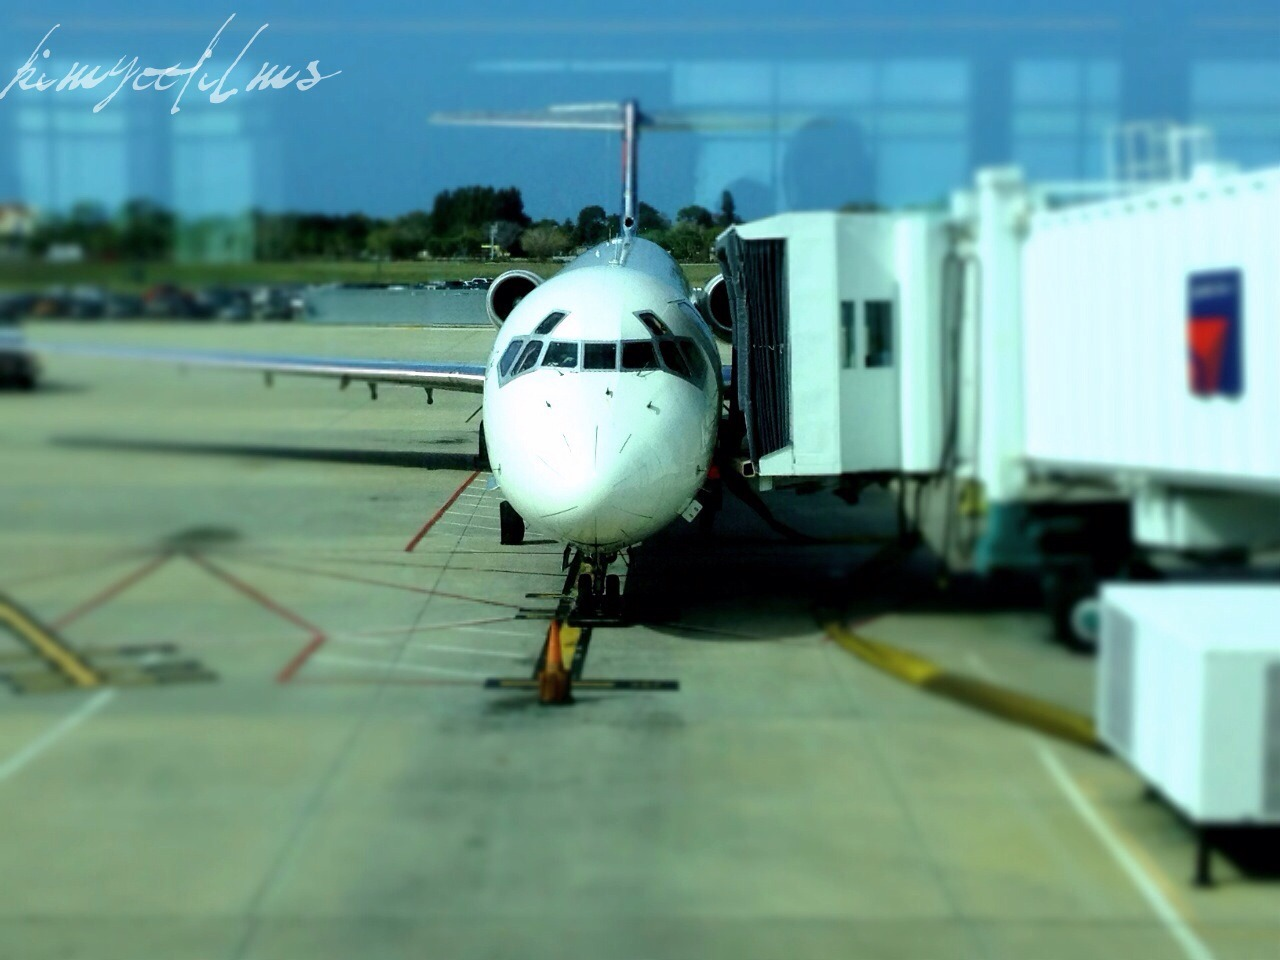 I like taking photos of the planes I board. It's like I'm stealing their souls.